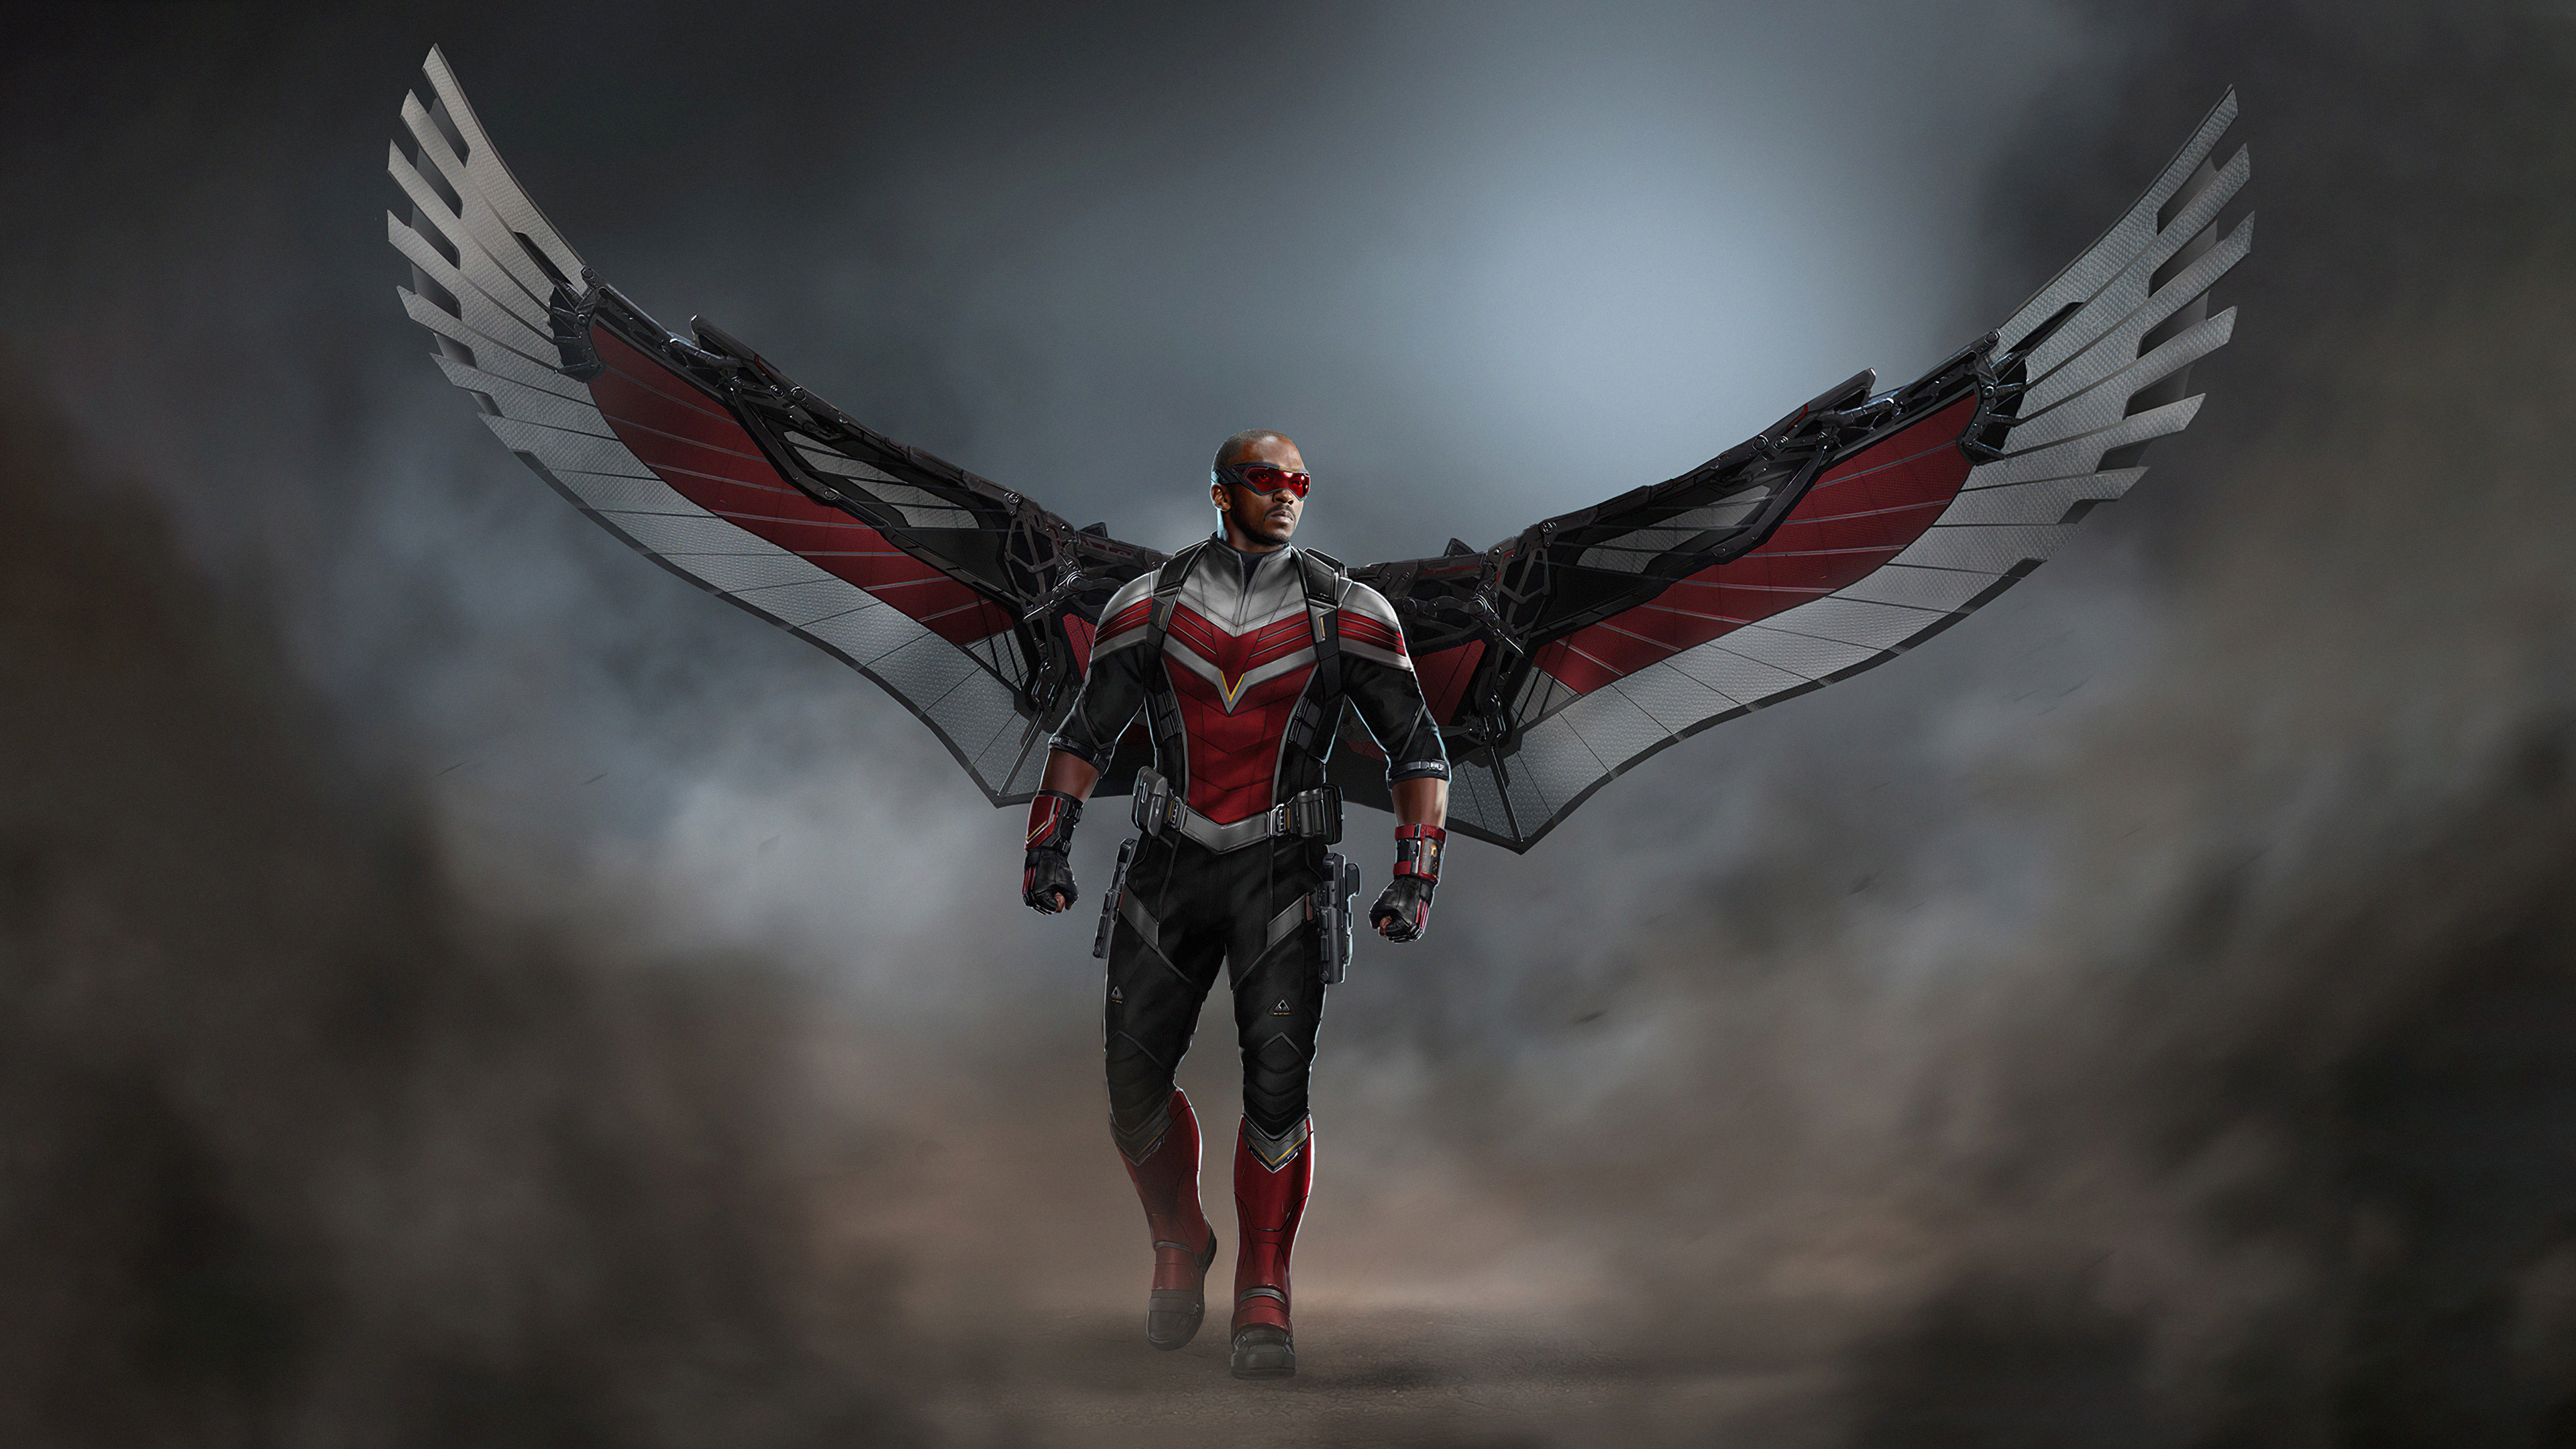 Wallpaper Falcon with wings